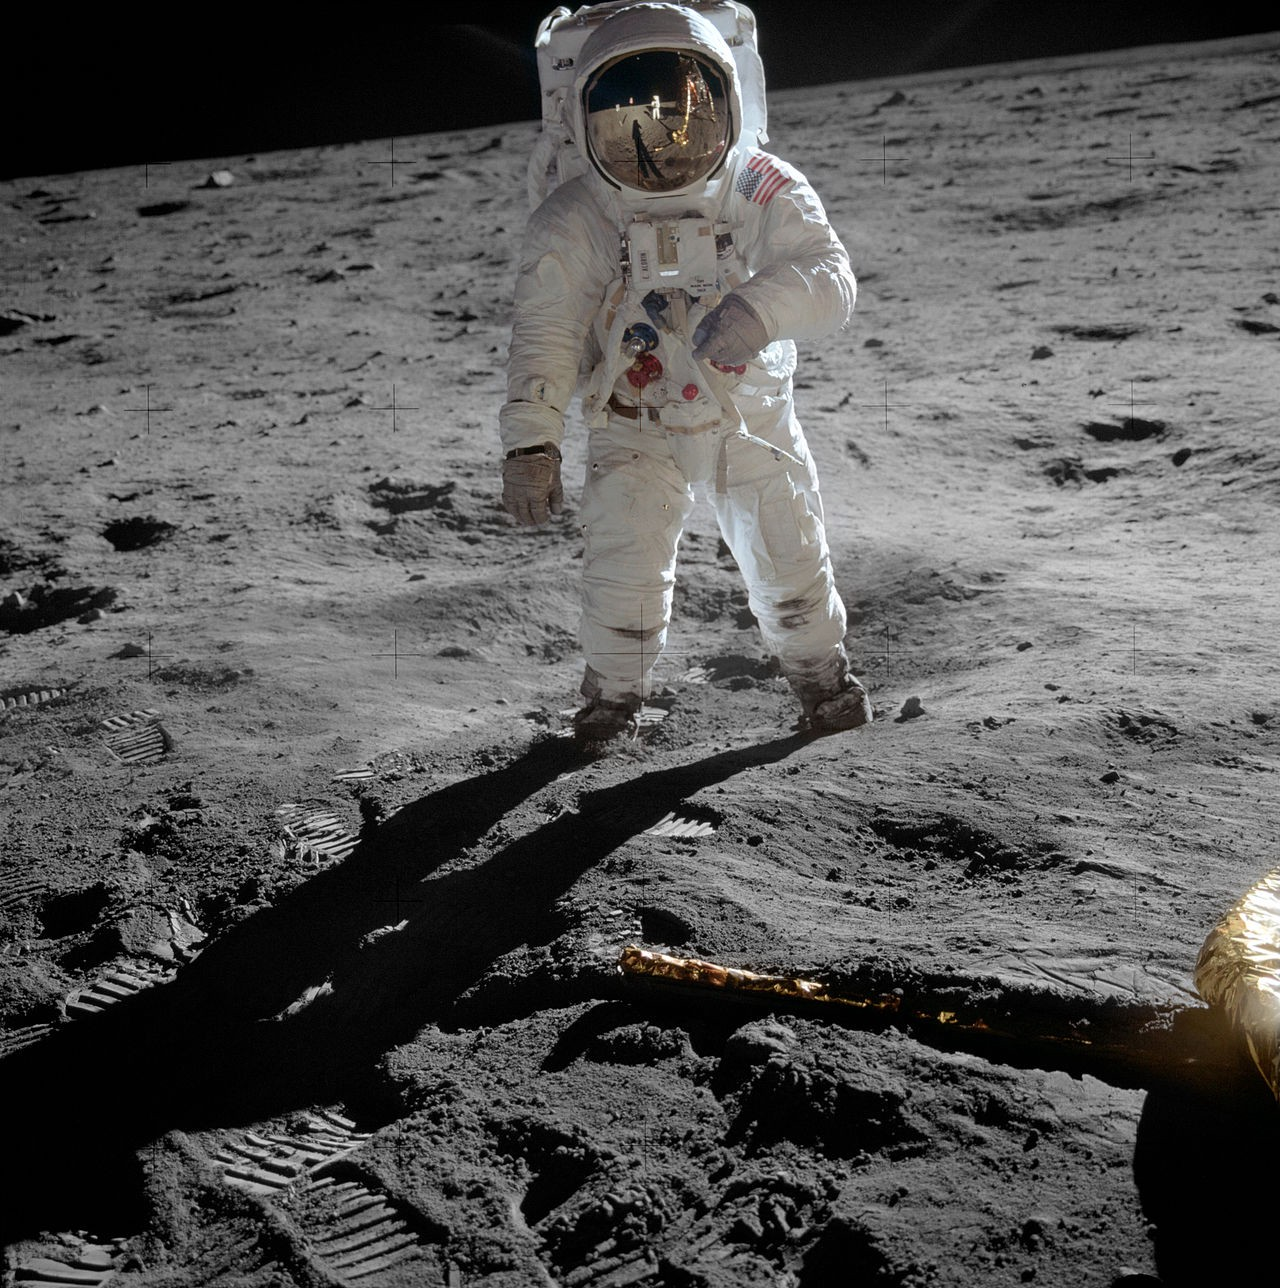 Photo of Buzz Aldrin on the moon taken by Neil Armstrong who is reflected in Aldrin's visor